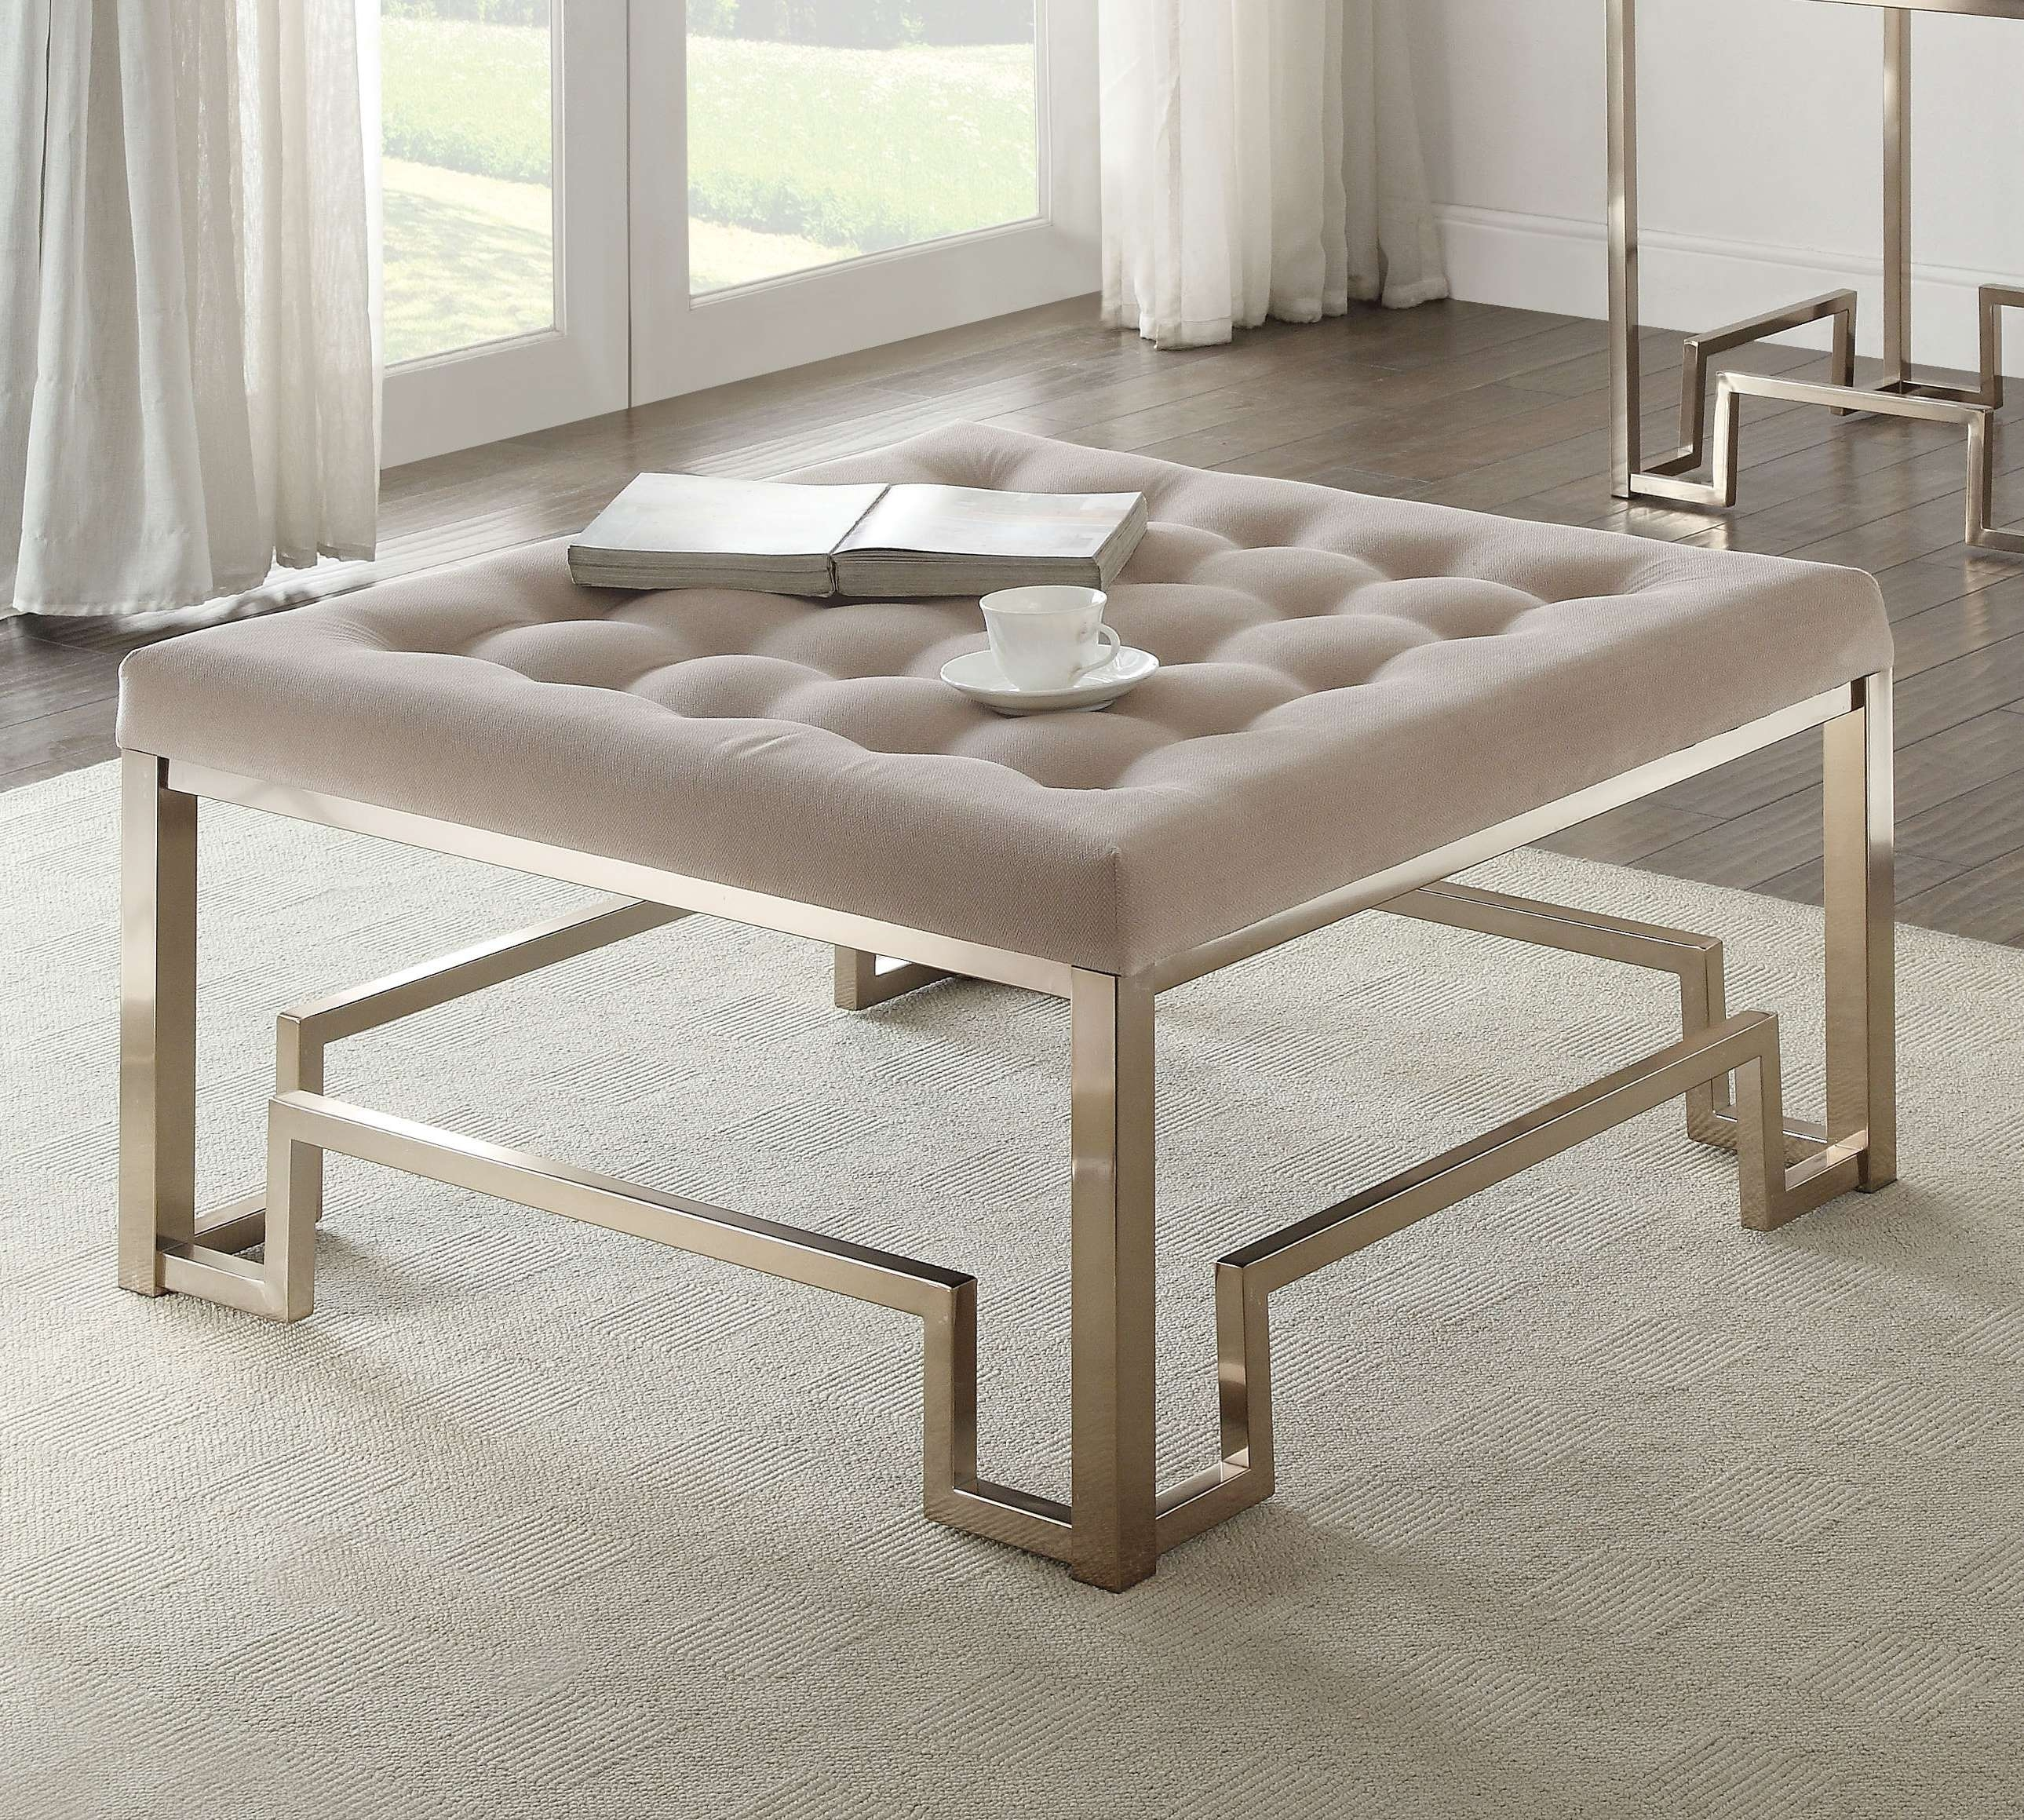 Wayfair With Most Popular Fabric Coffee Tables (View 11 of 20)